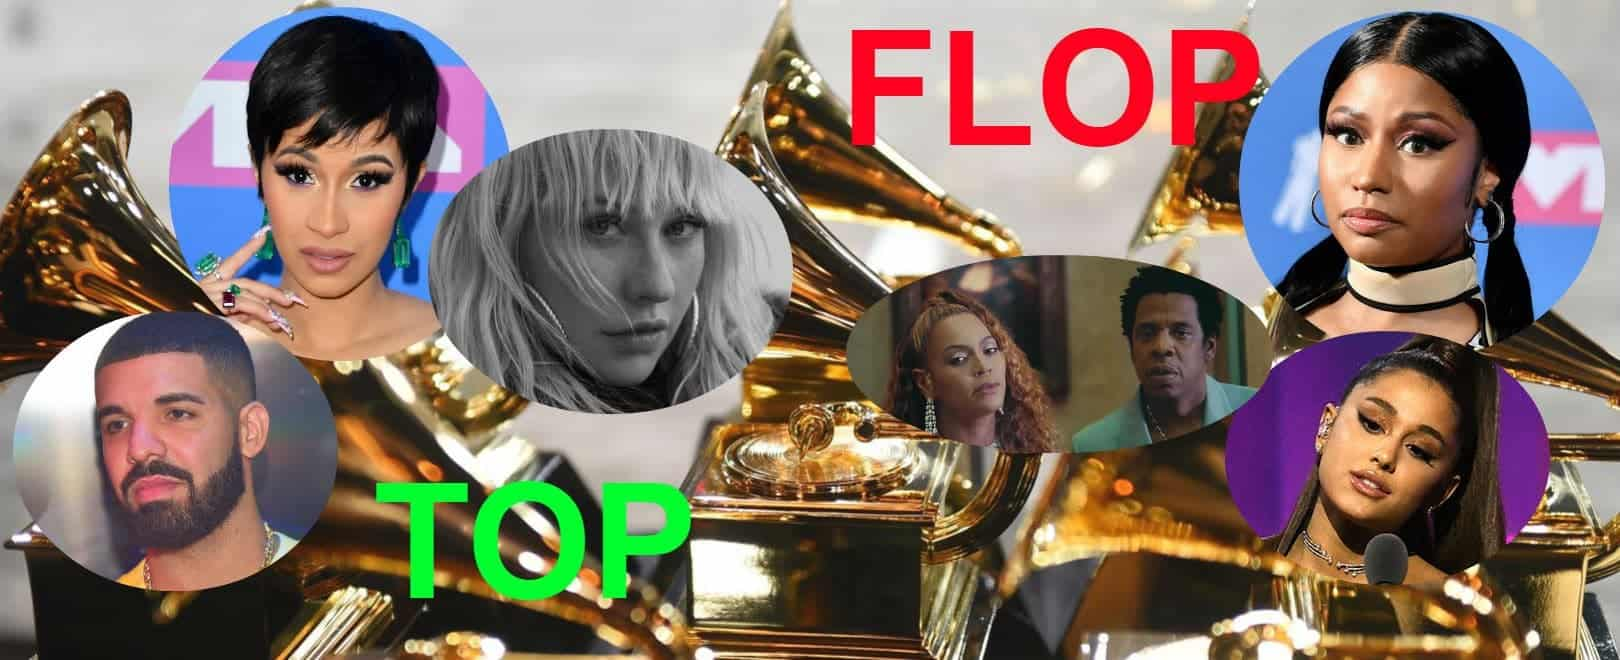 Photo of Grammy 2019: vincitori ed esclusi di queste nominations! Tante sorprese.